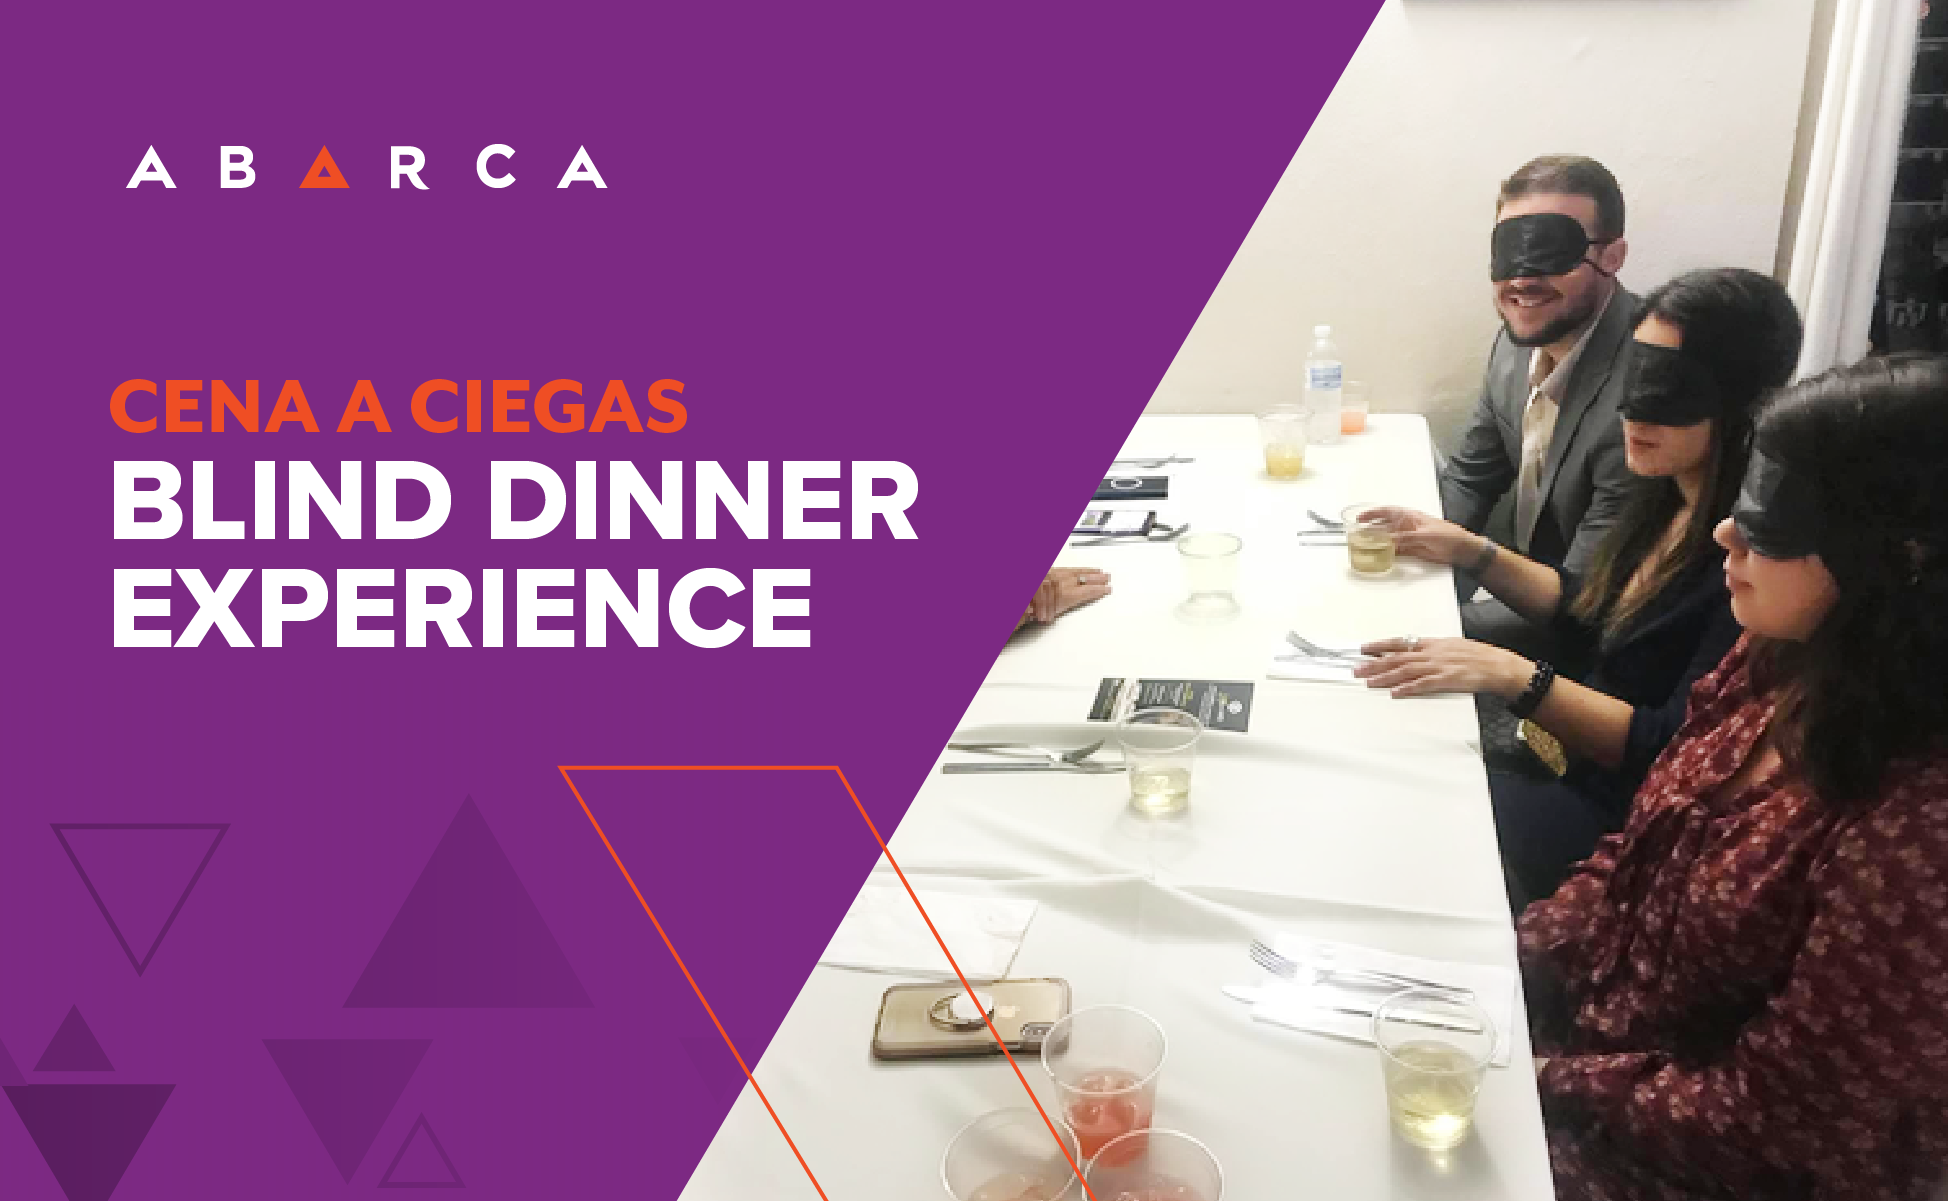 Abarcans Humbled by Cena a Ciegas Blind Dinner Experience